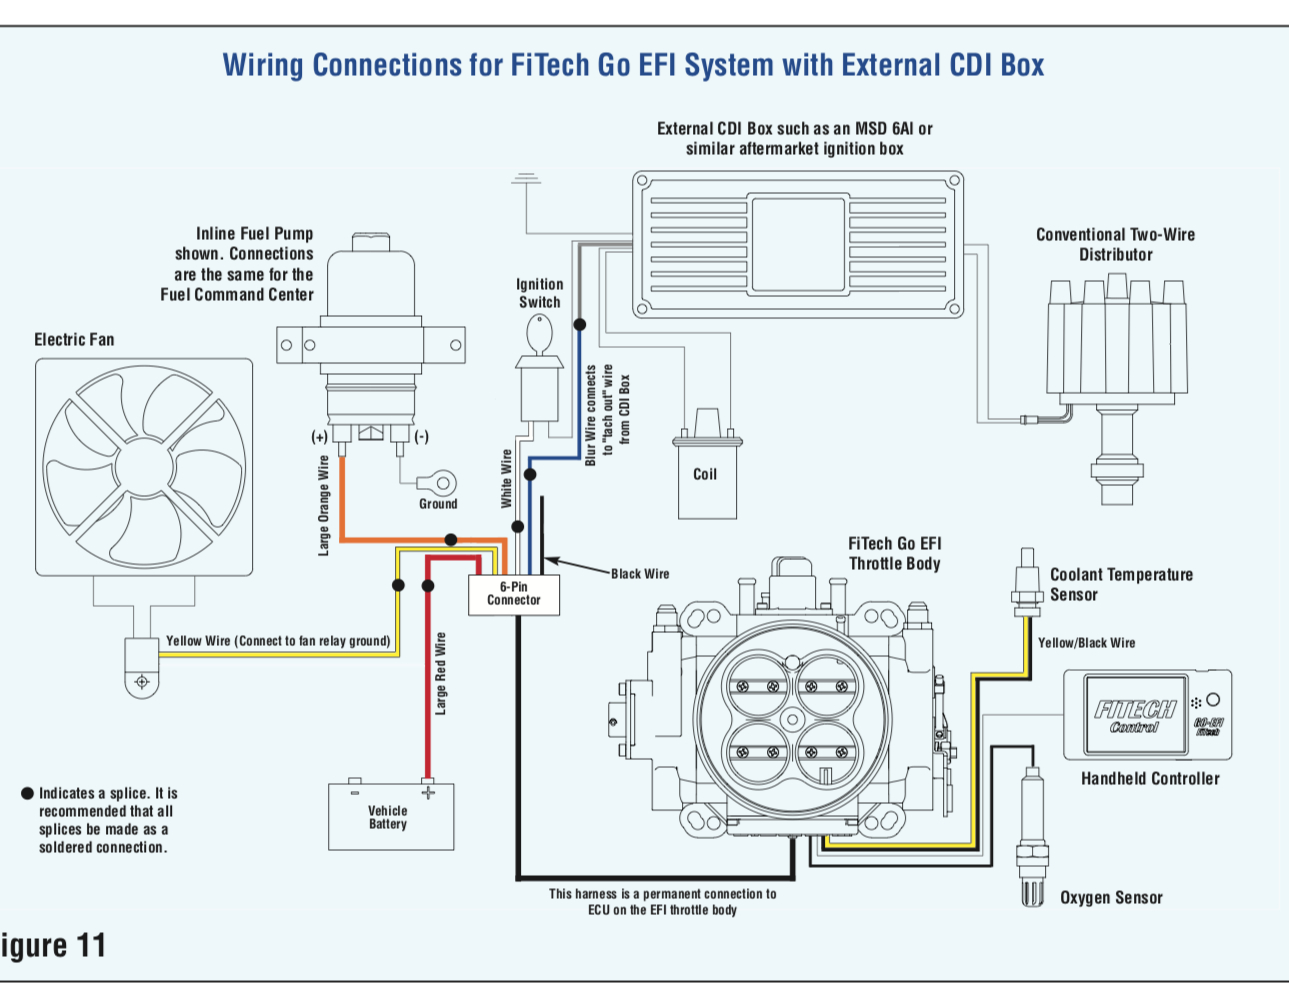 Fitech Wiring W/cdi Box And Petronix Distributor - Vintage Mustang - Fitech Wiring Diagram